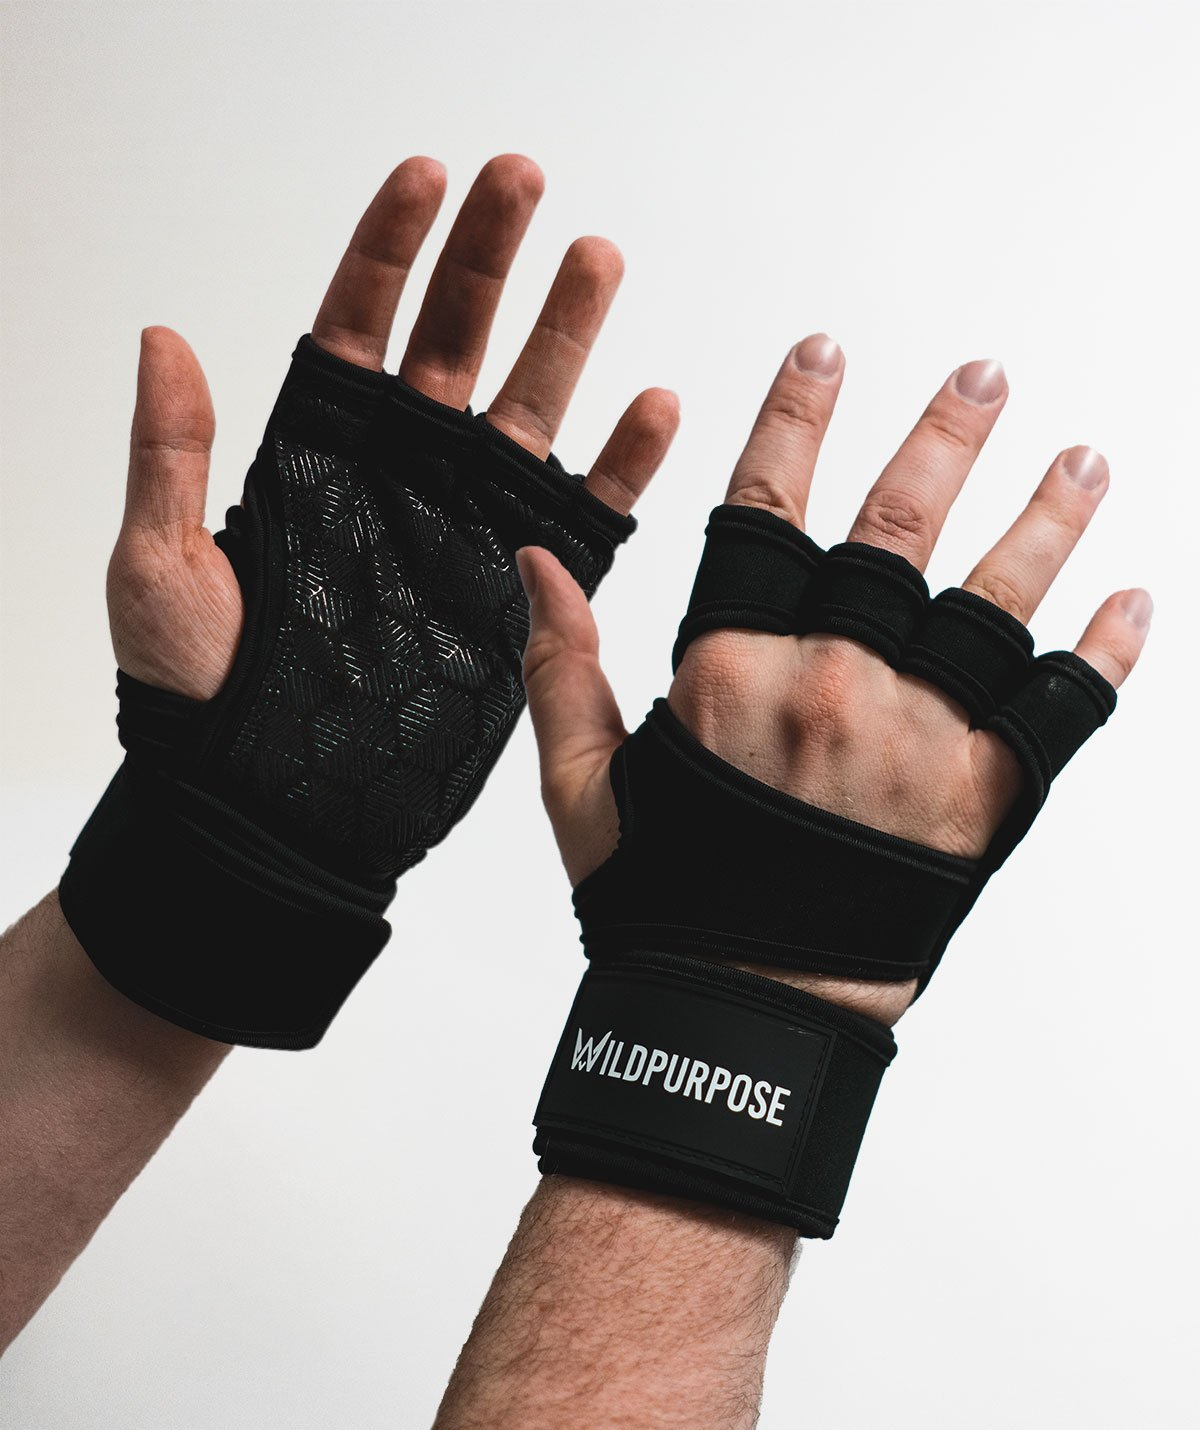 Purpose Gloves